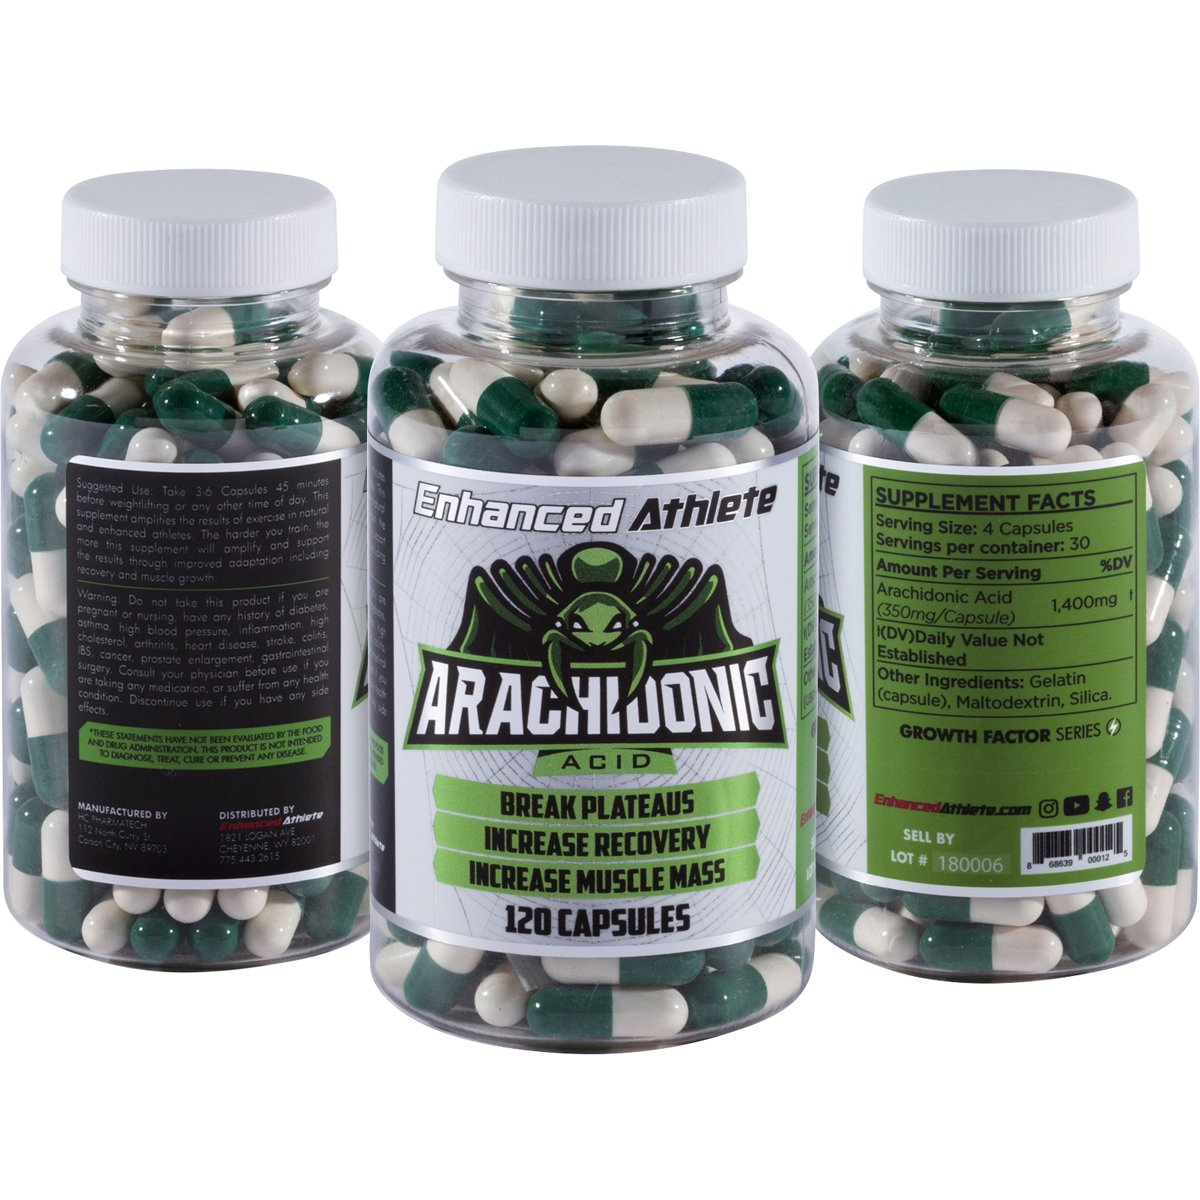 Enhanced Athlete Arachidonic Acid - Muscle and Strength Booster - Preserve Muscle and Boost Protein Synthesis - 350mg x 120 Capsules by ENHANCEDATHLETE .COM